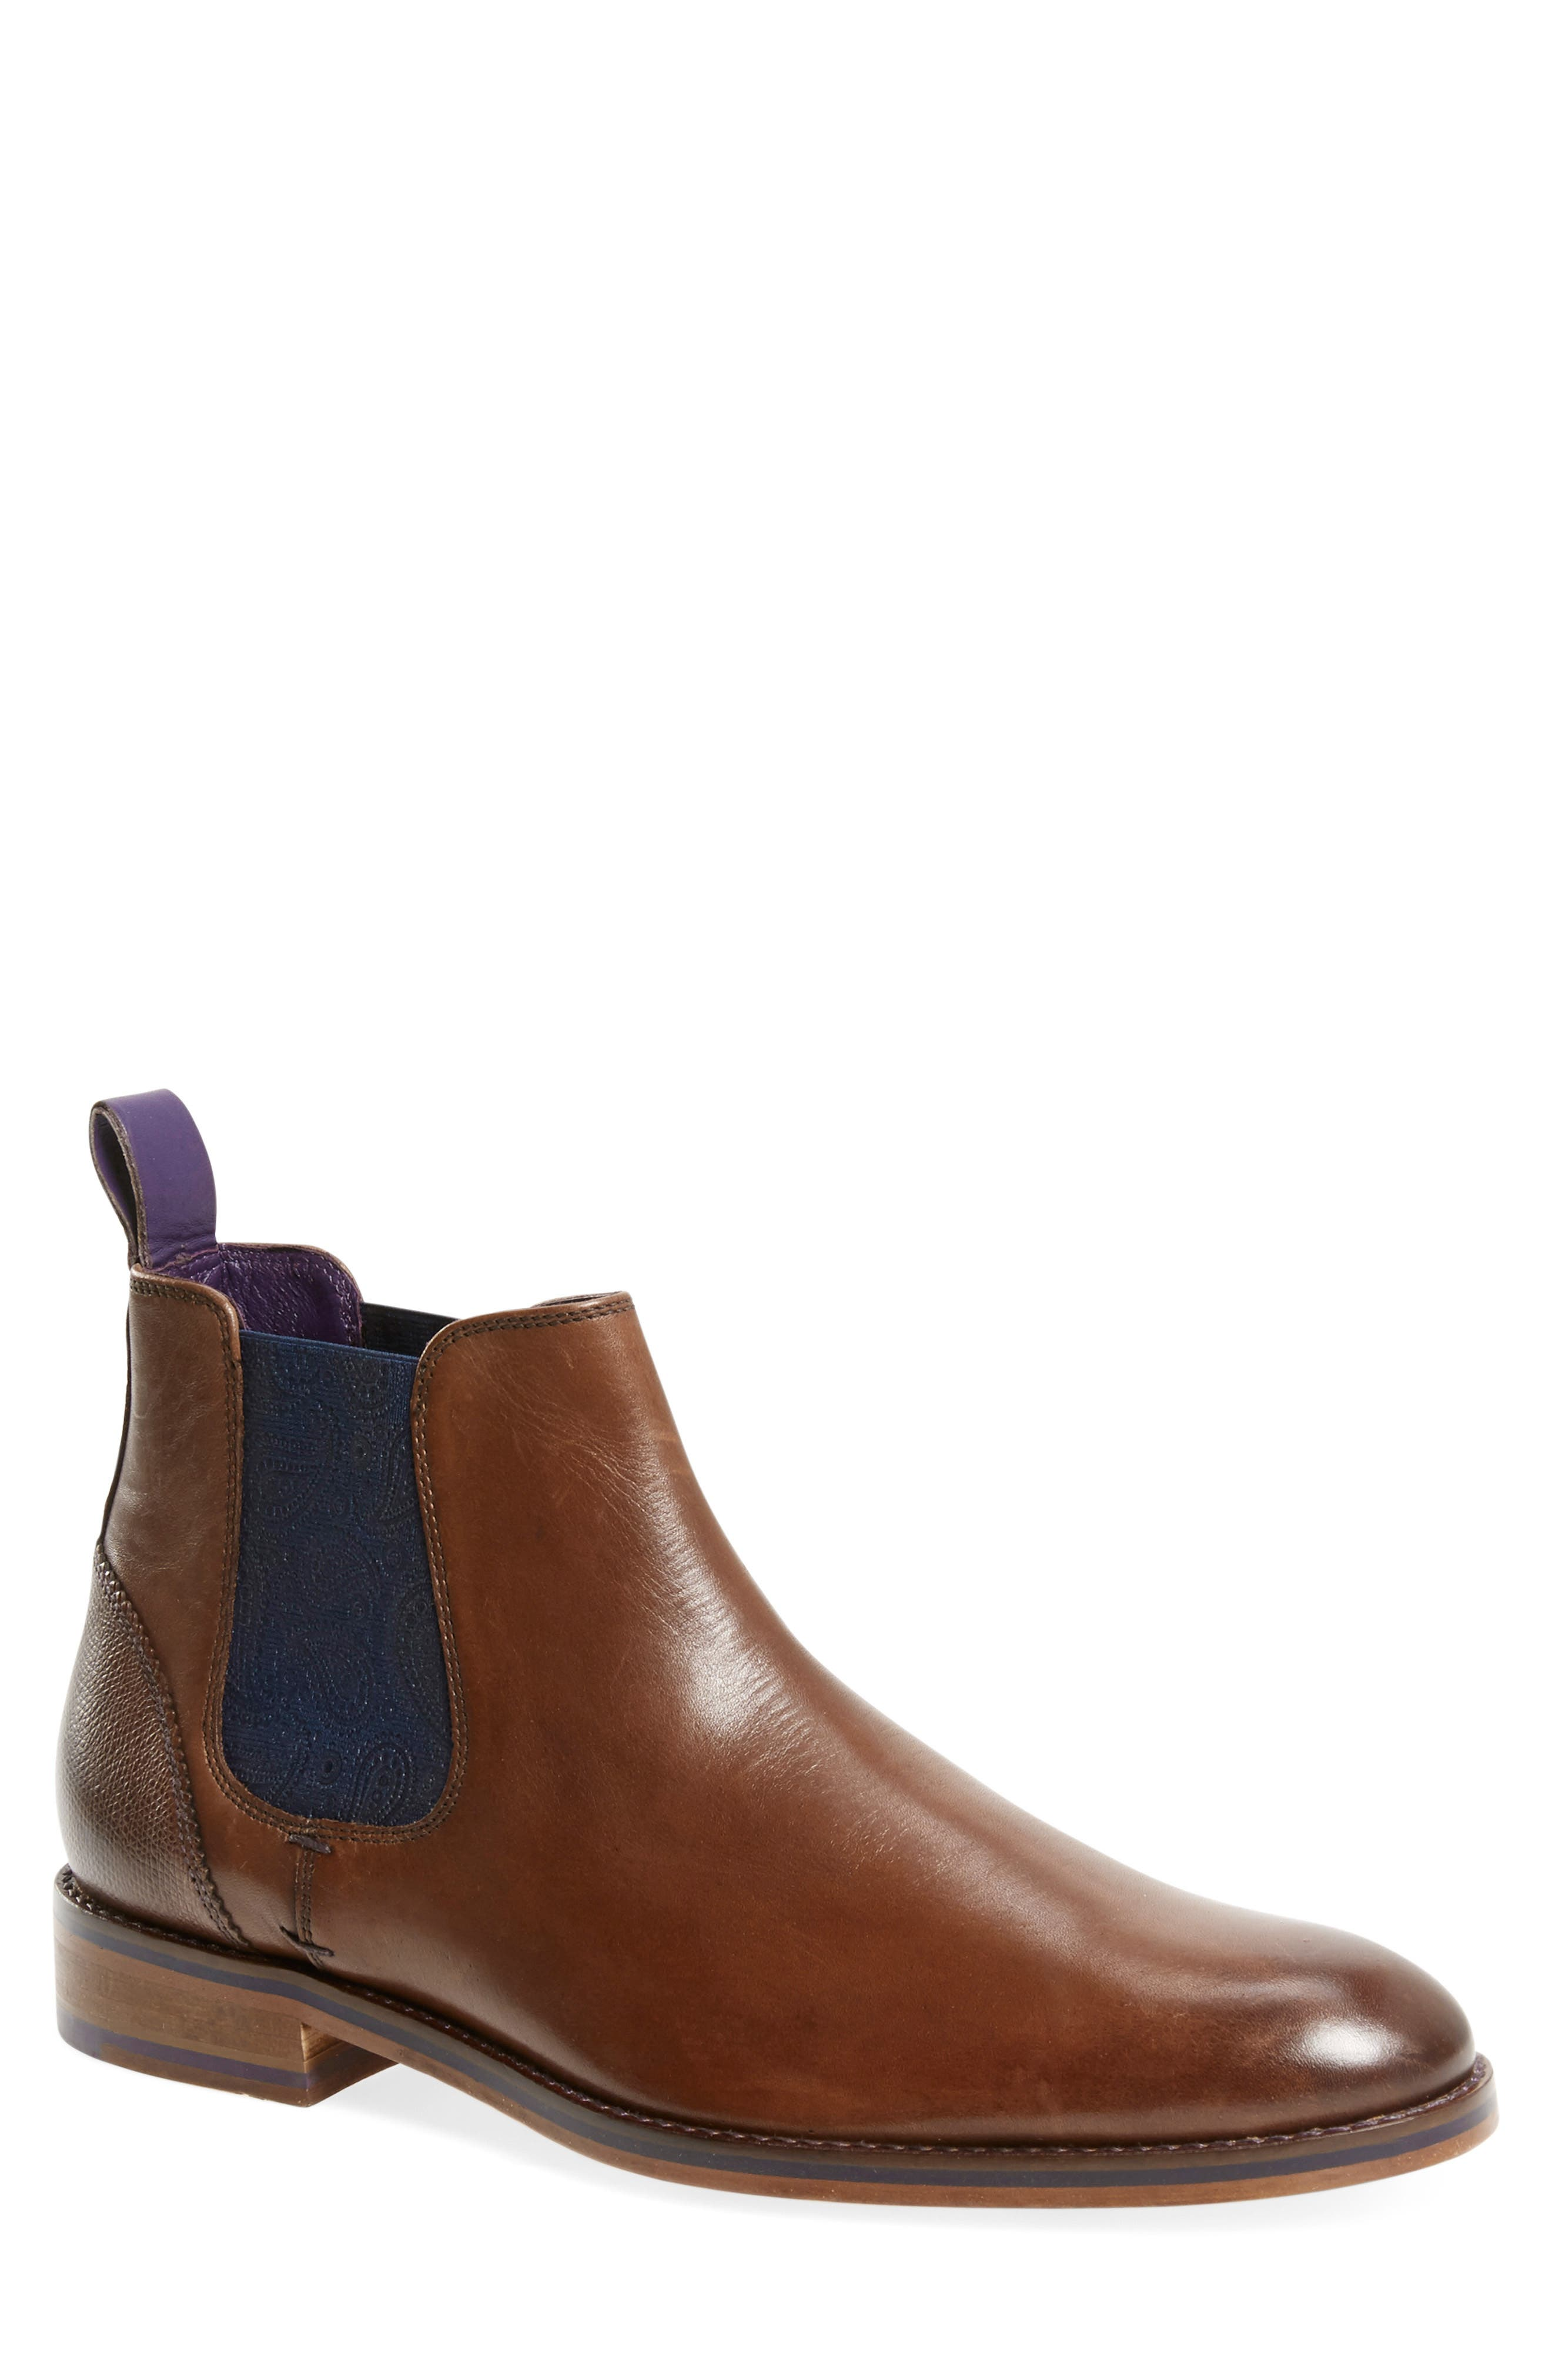 TED BAKER LONDON, 'Camroon 4' Chelsea Boot, Alternate thumbnail 2, color, 219